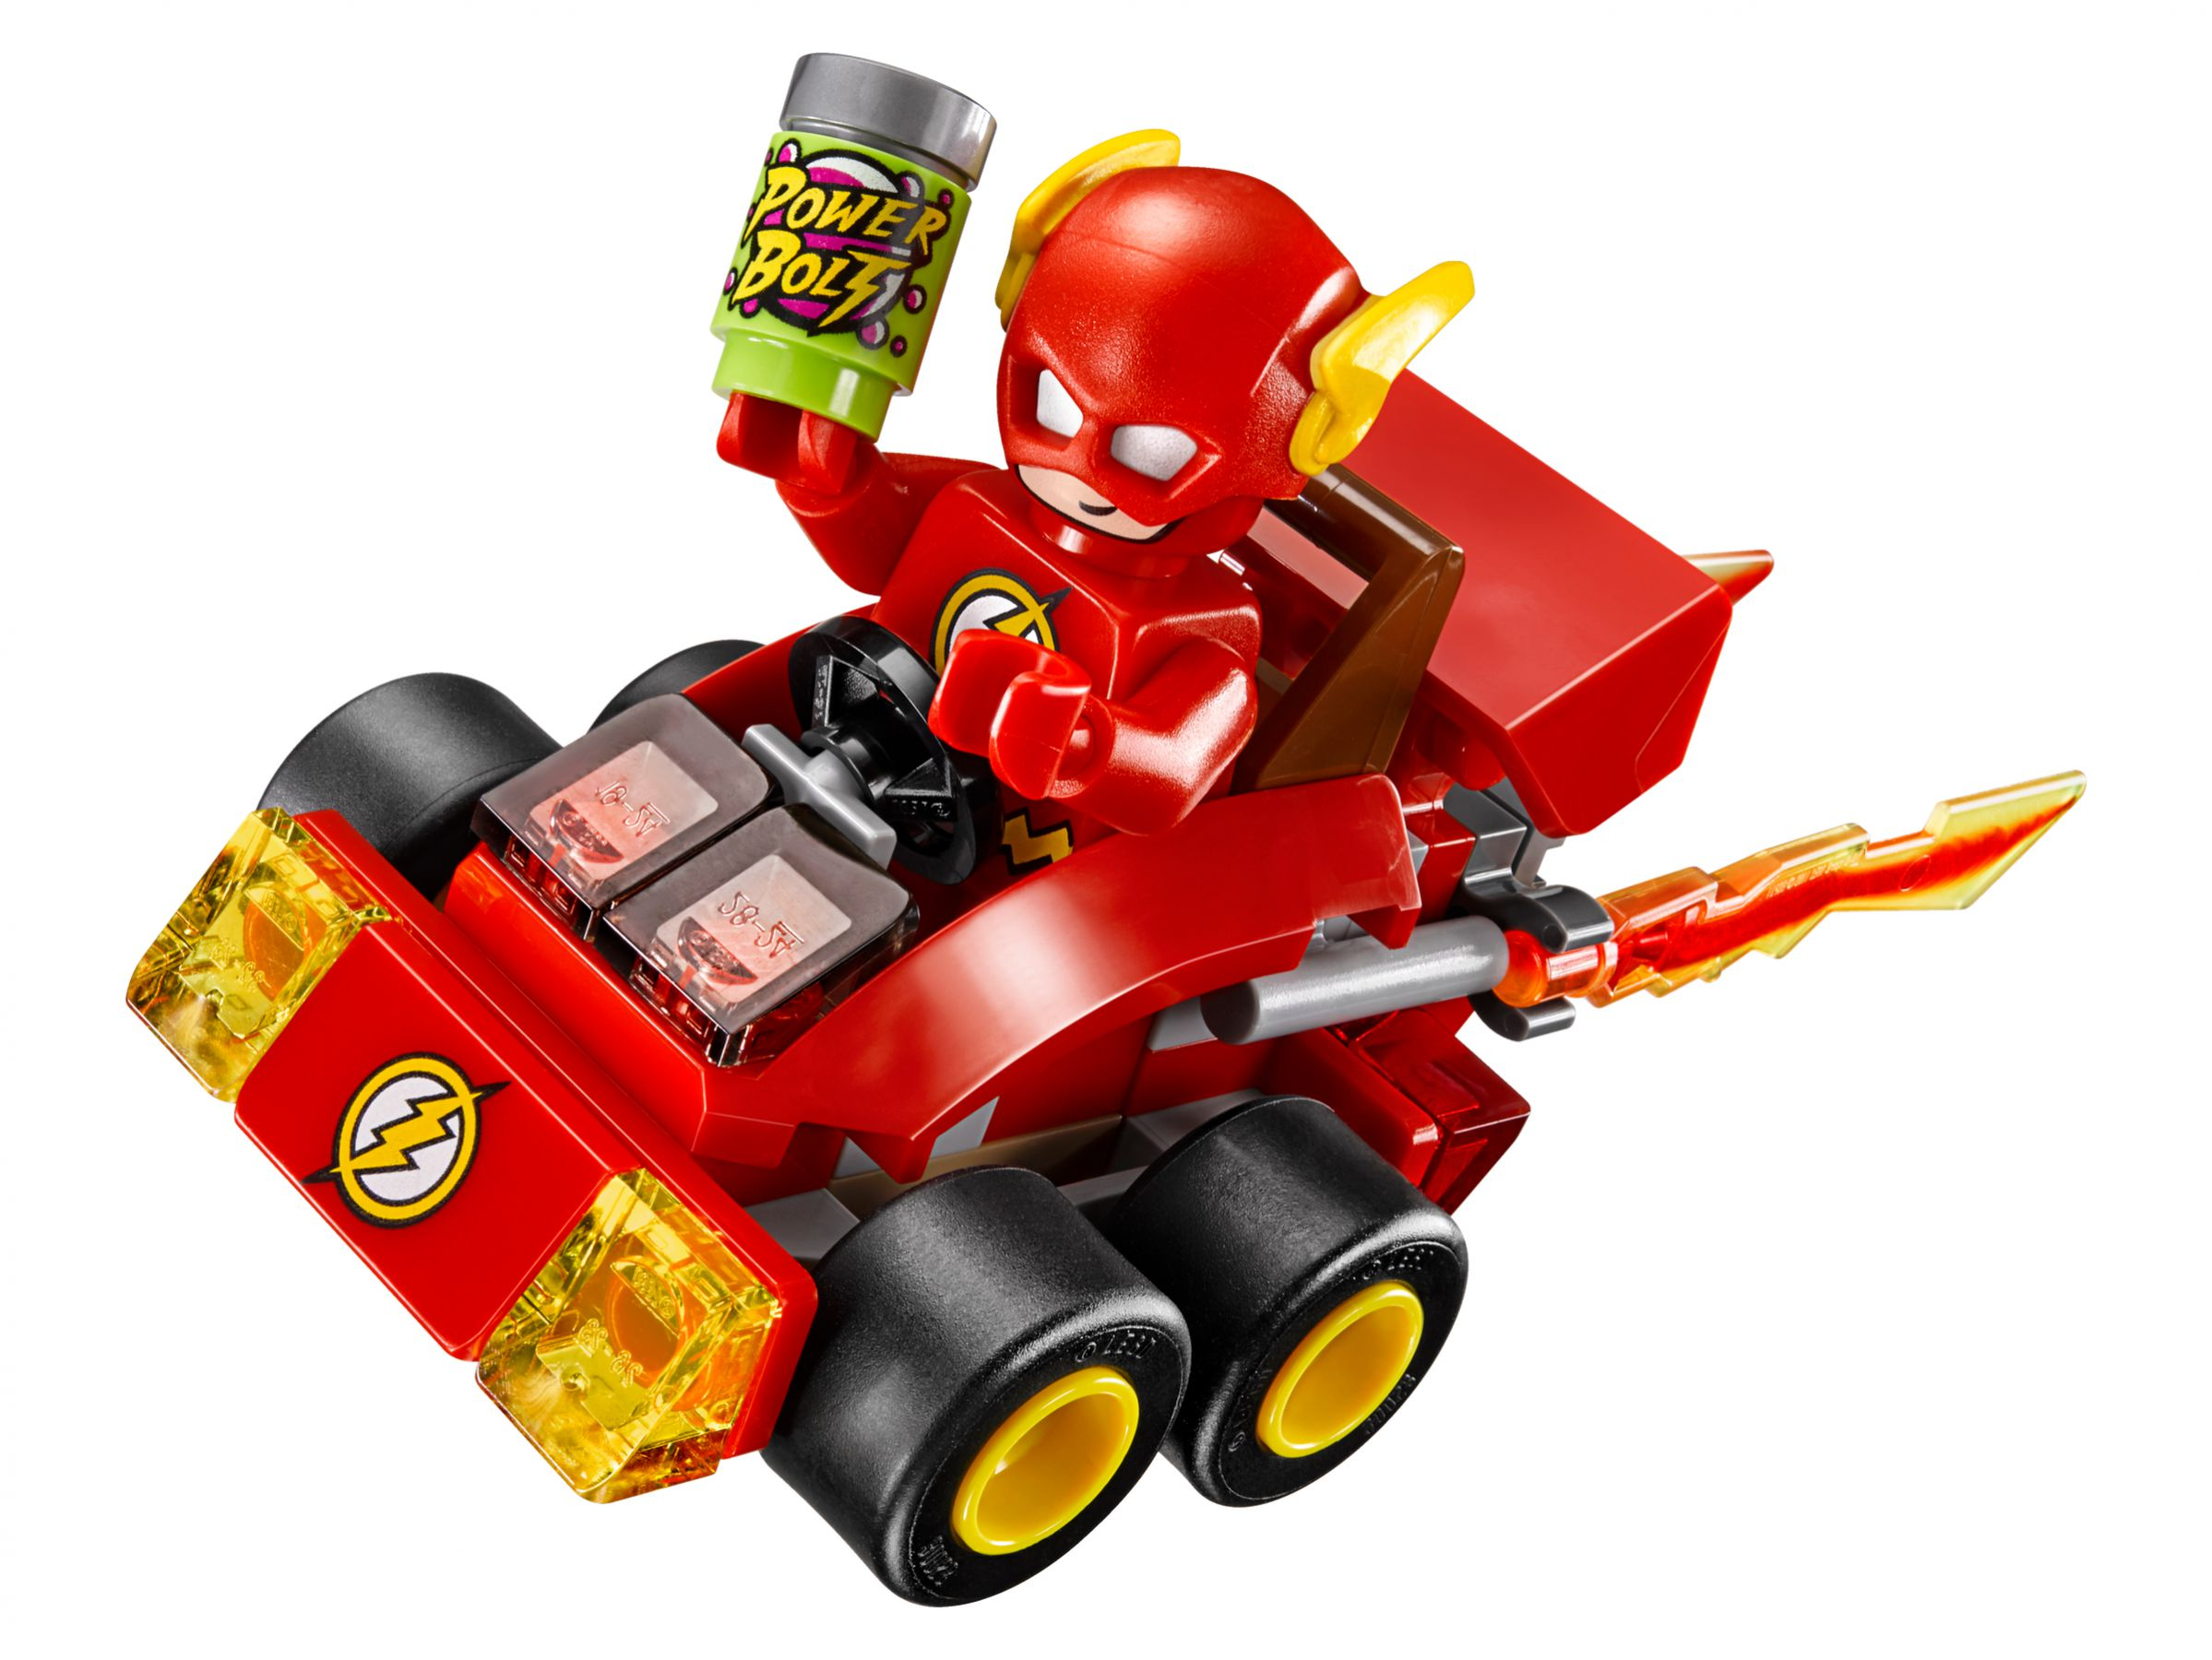 LEGO Super Heroes 76063 Mighty Micros: The Flash™ vs. Captain Cold™ LEGO_76063_alt2.jpg